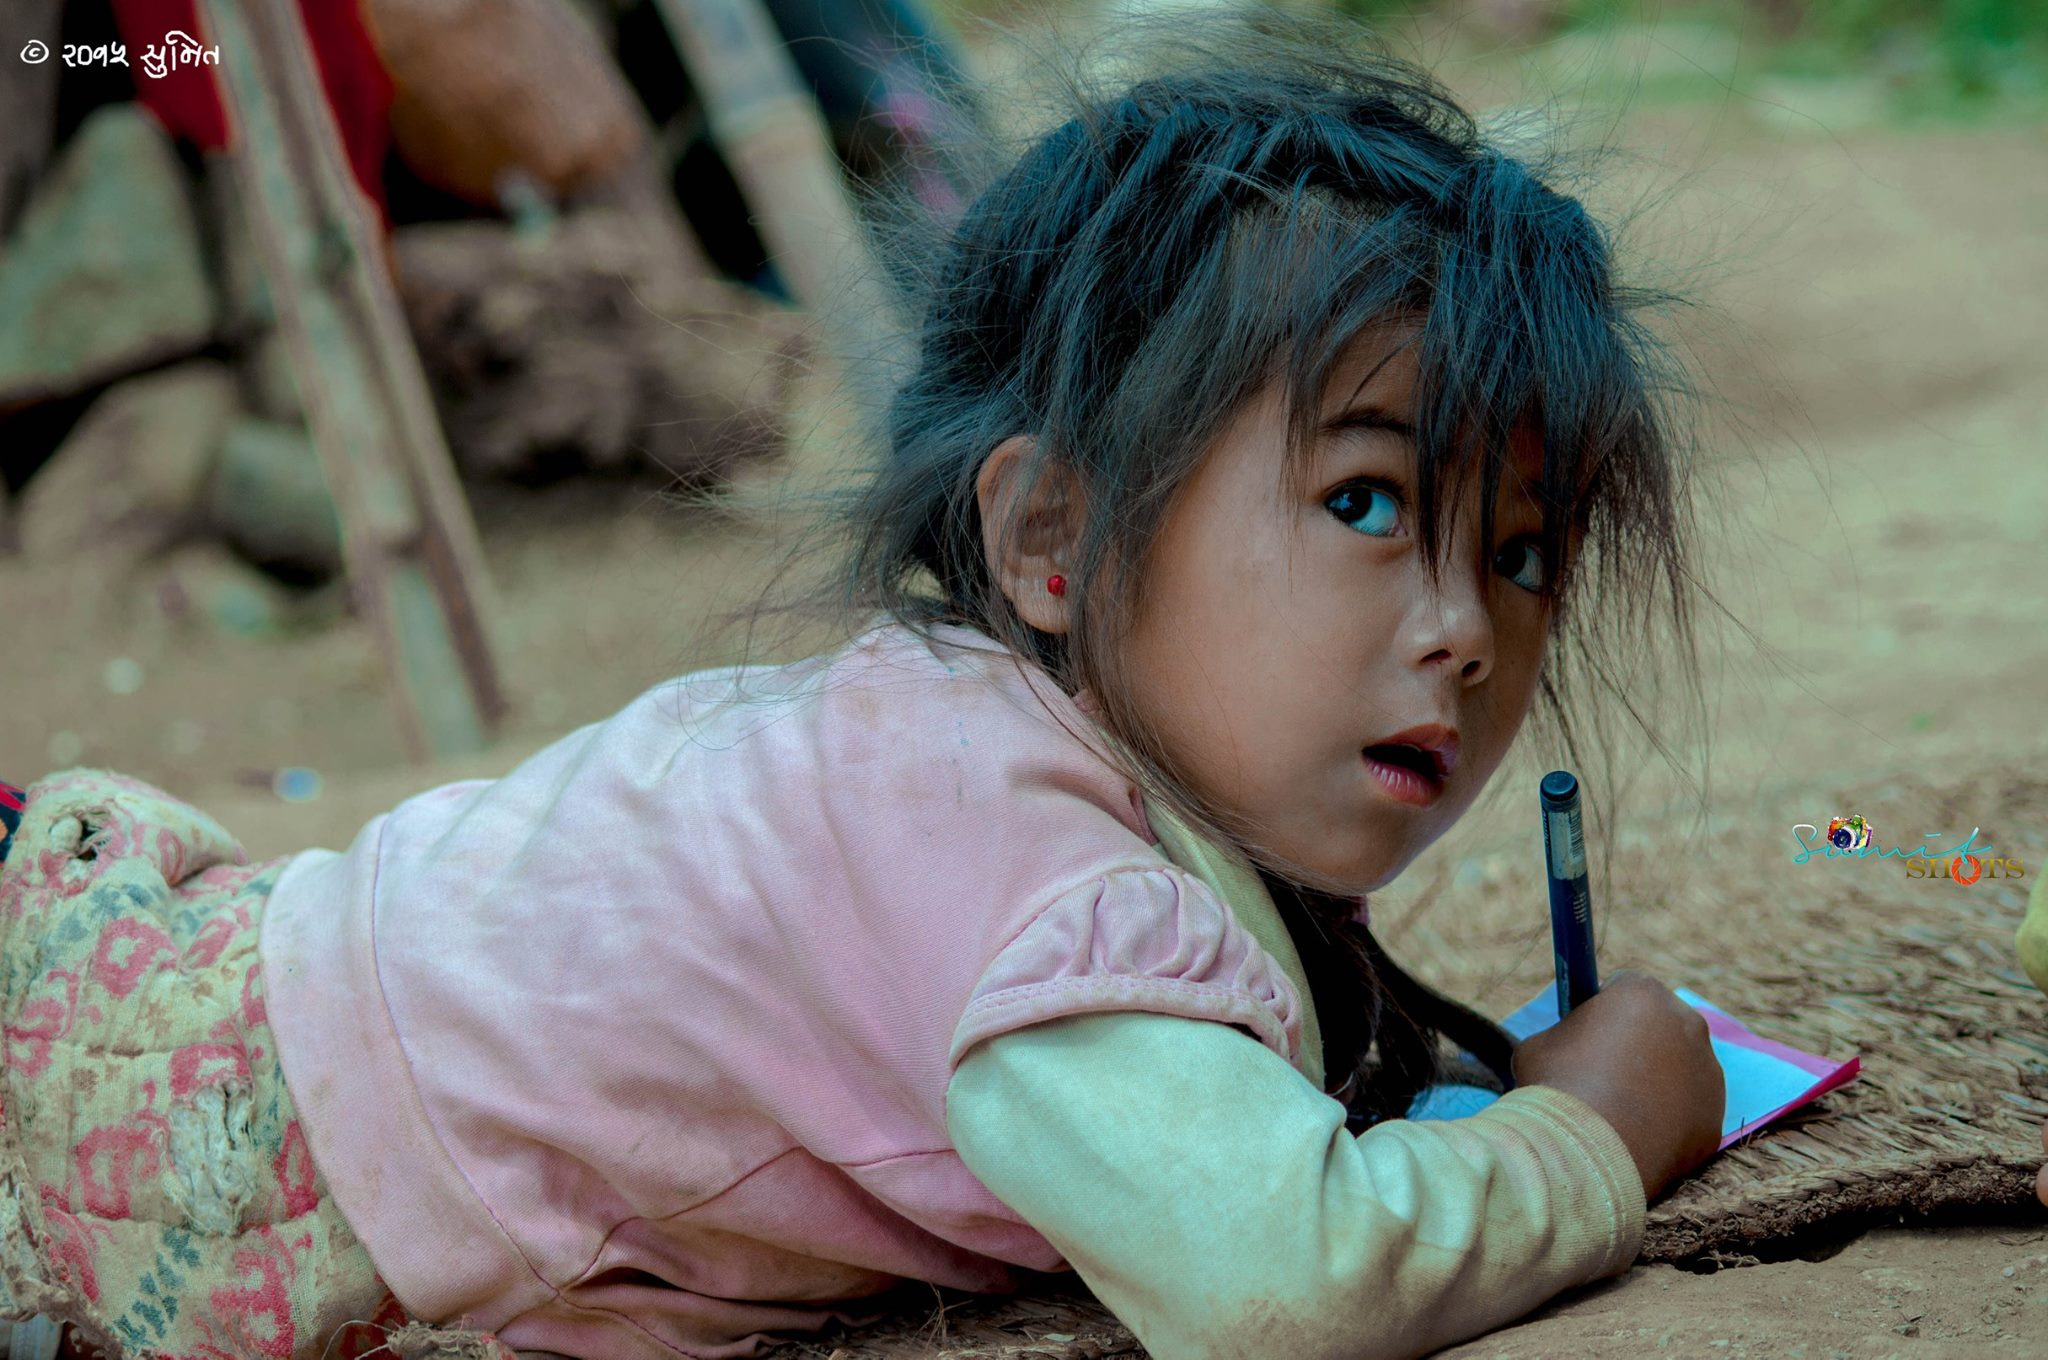 We are reaching out to provide for these children in all affected areas in Nepal.